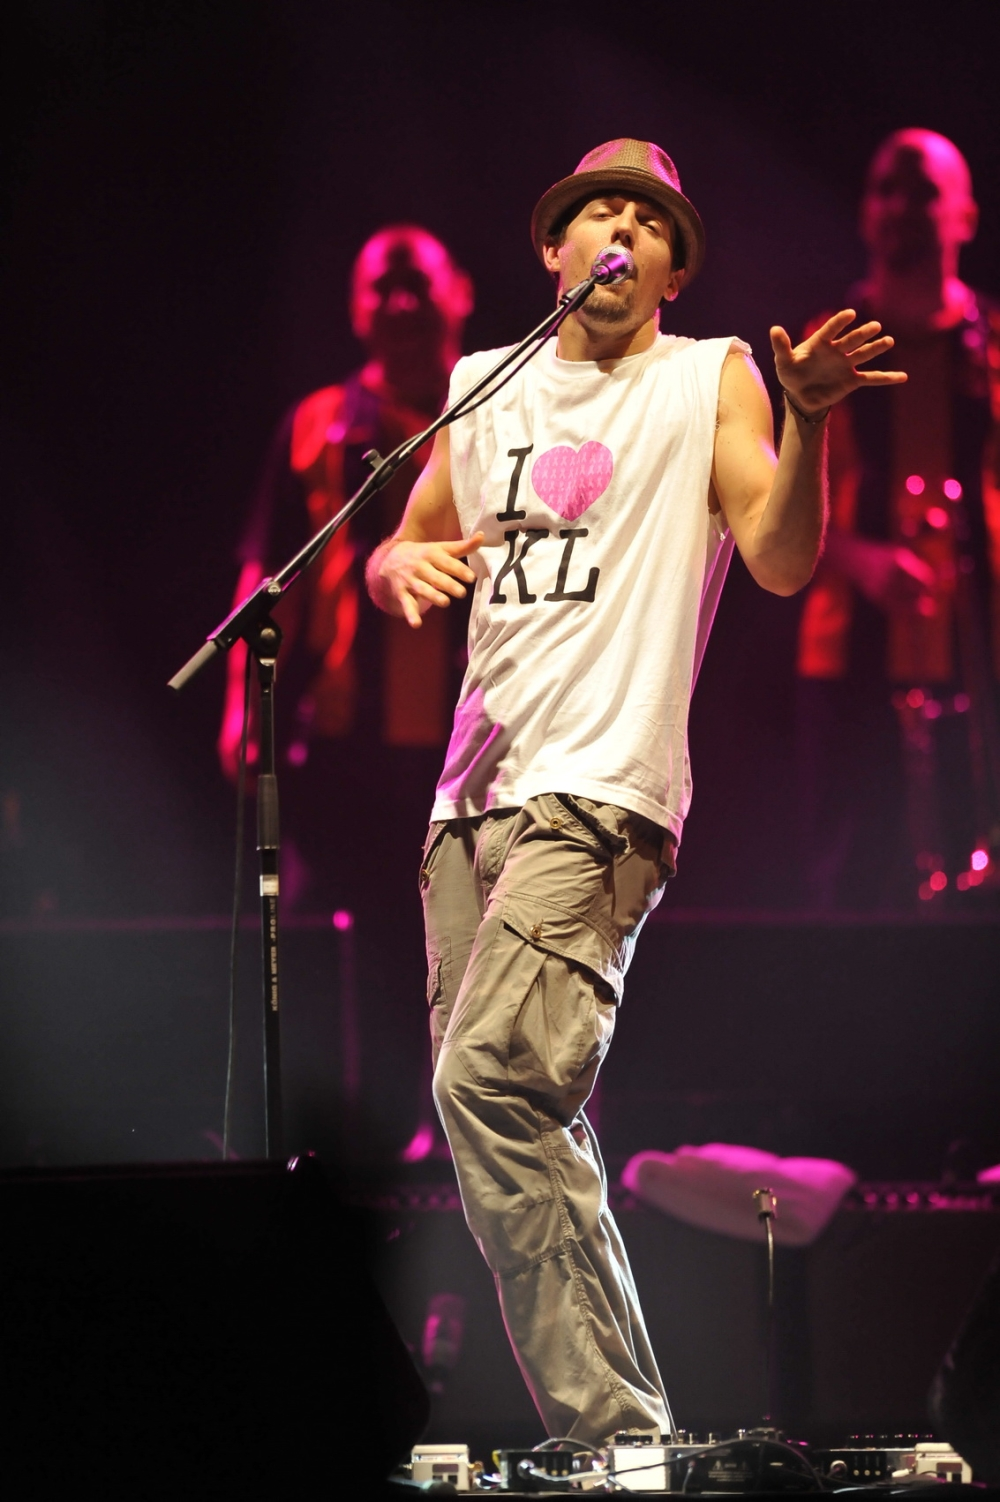 Jason Mraz performing in Kuala Lumpur for the first time in March 2009.